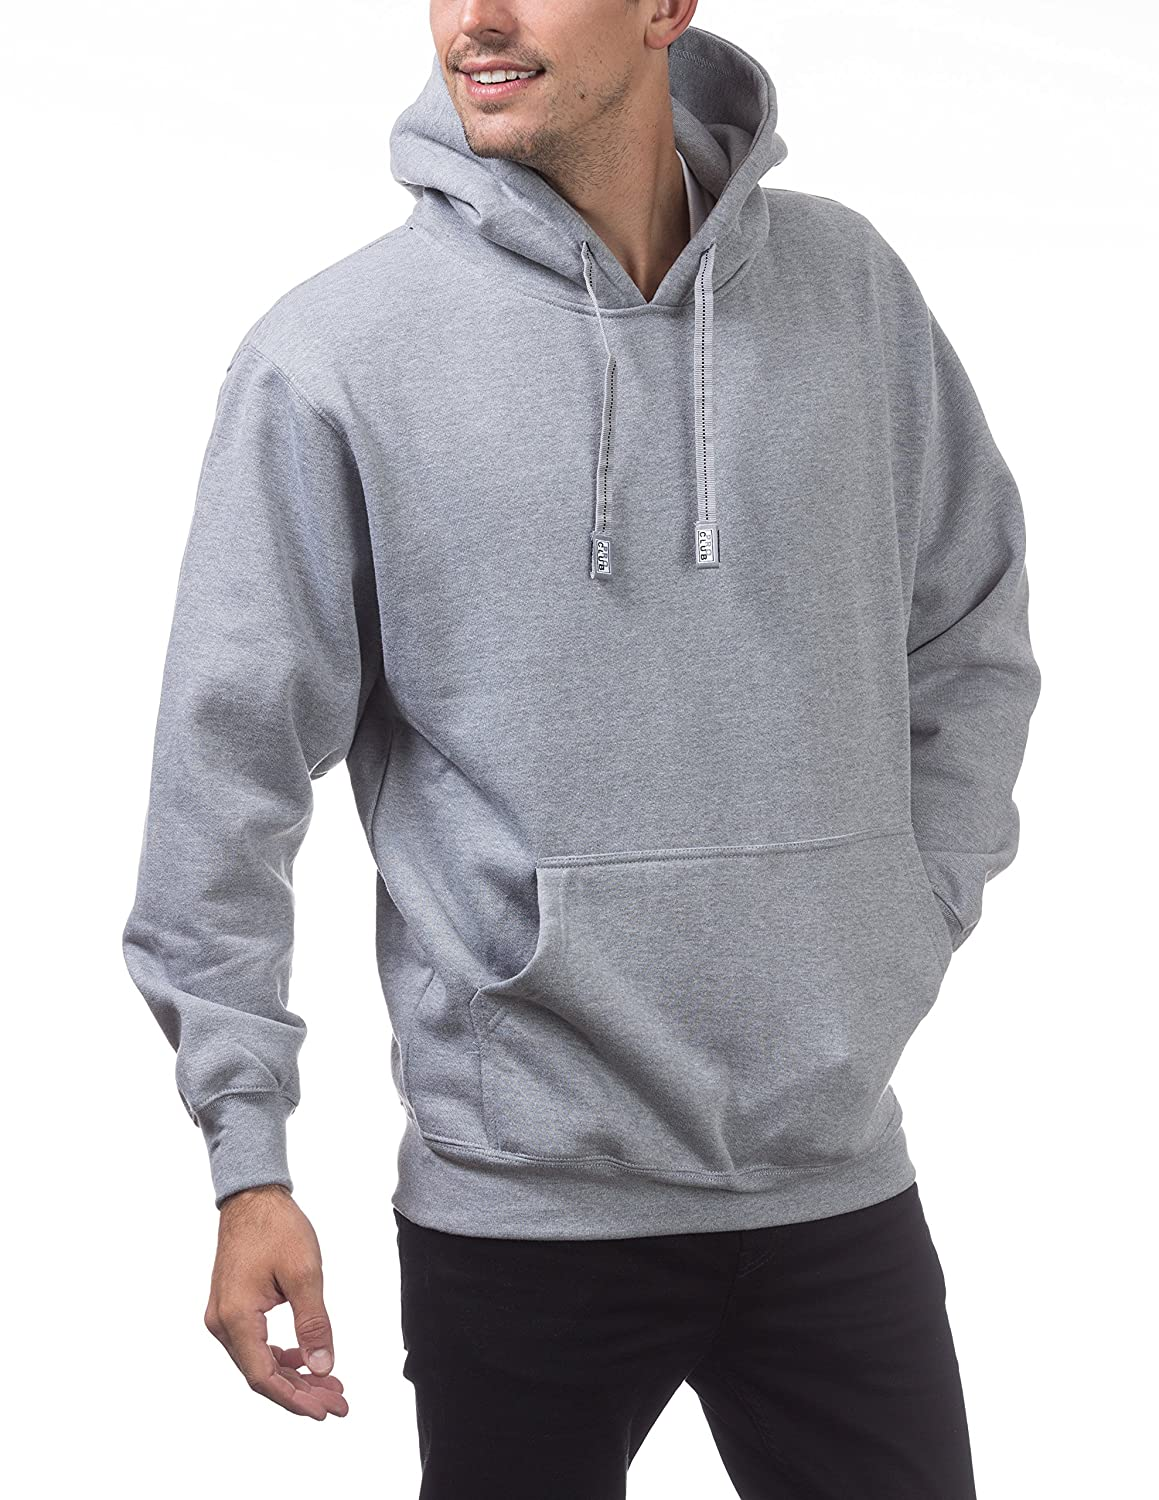 Difference Between Sweater Sweatshirt And Jacket